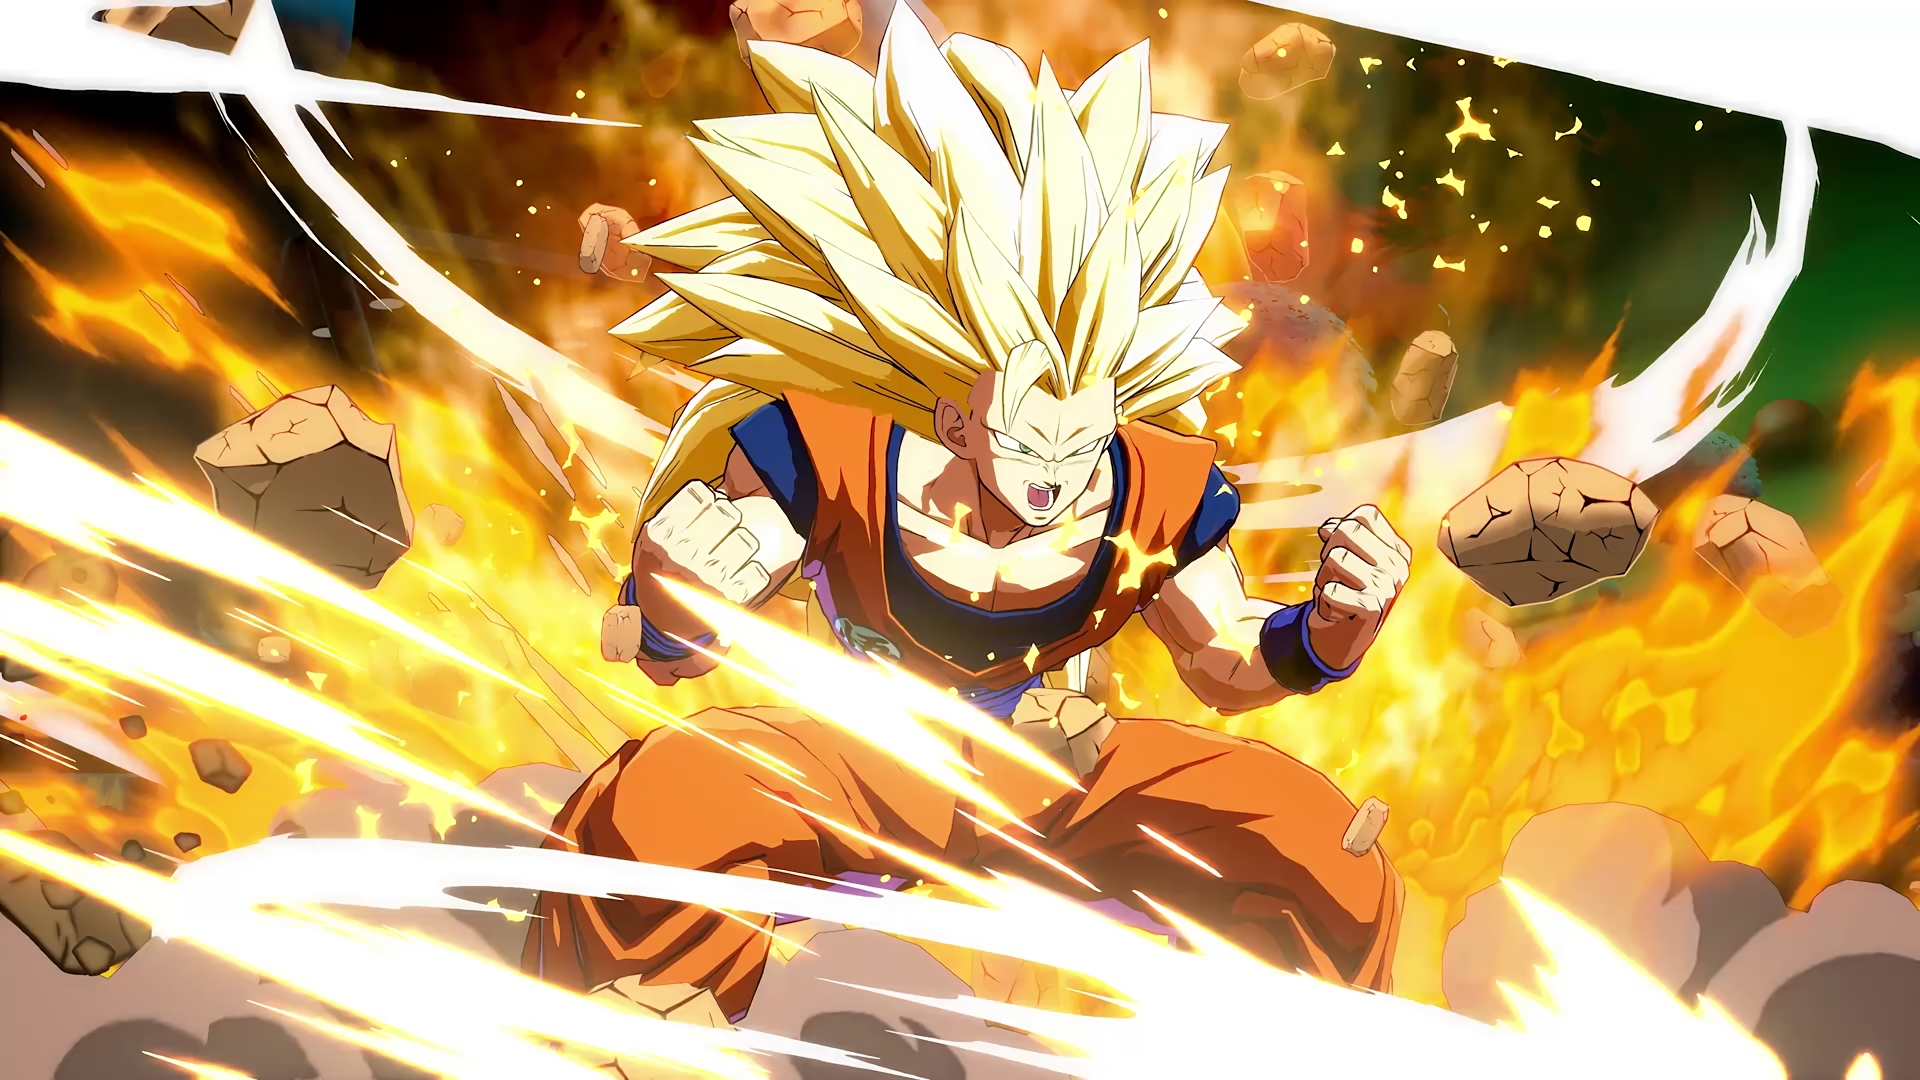 Dragon ball fighterz roster guide which character should i pick usgamer - Photo dragon ball z ...